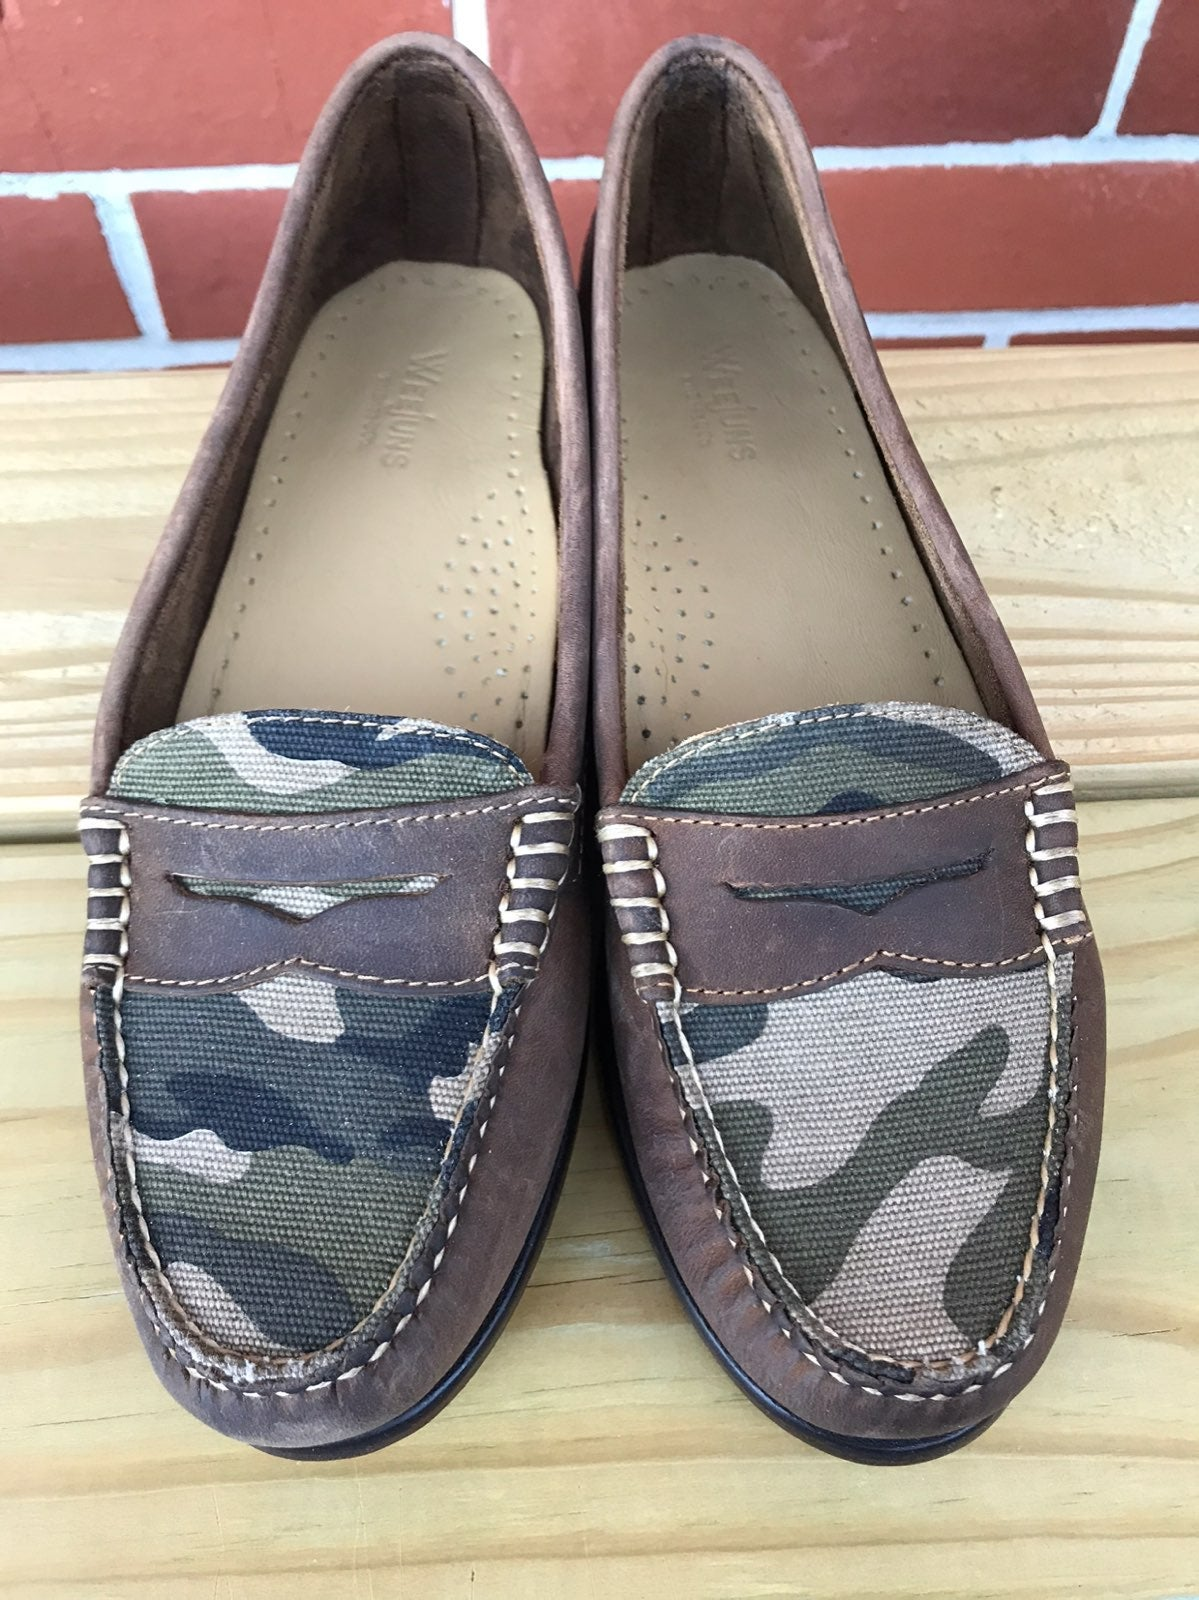 Weejuns Bass Leather Shoes Camo 8.5